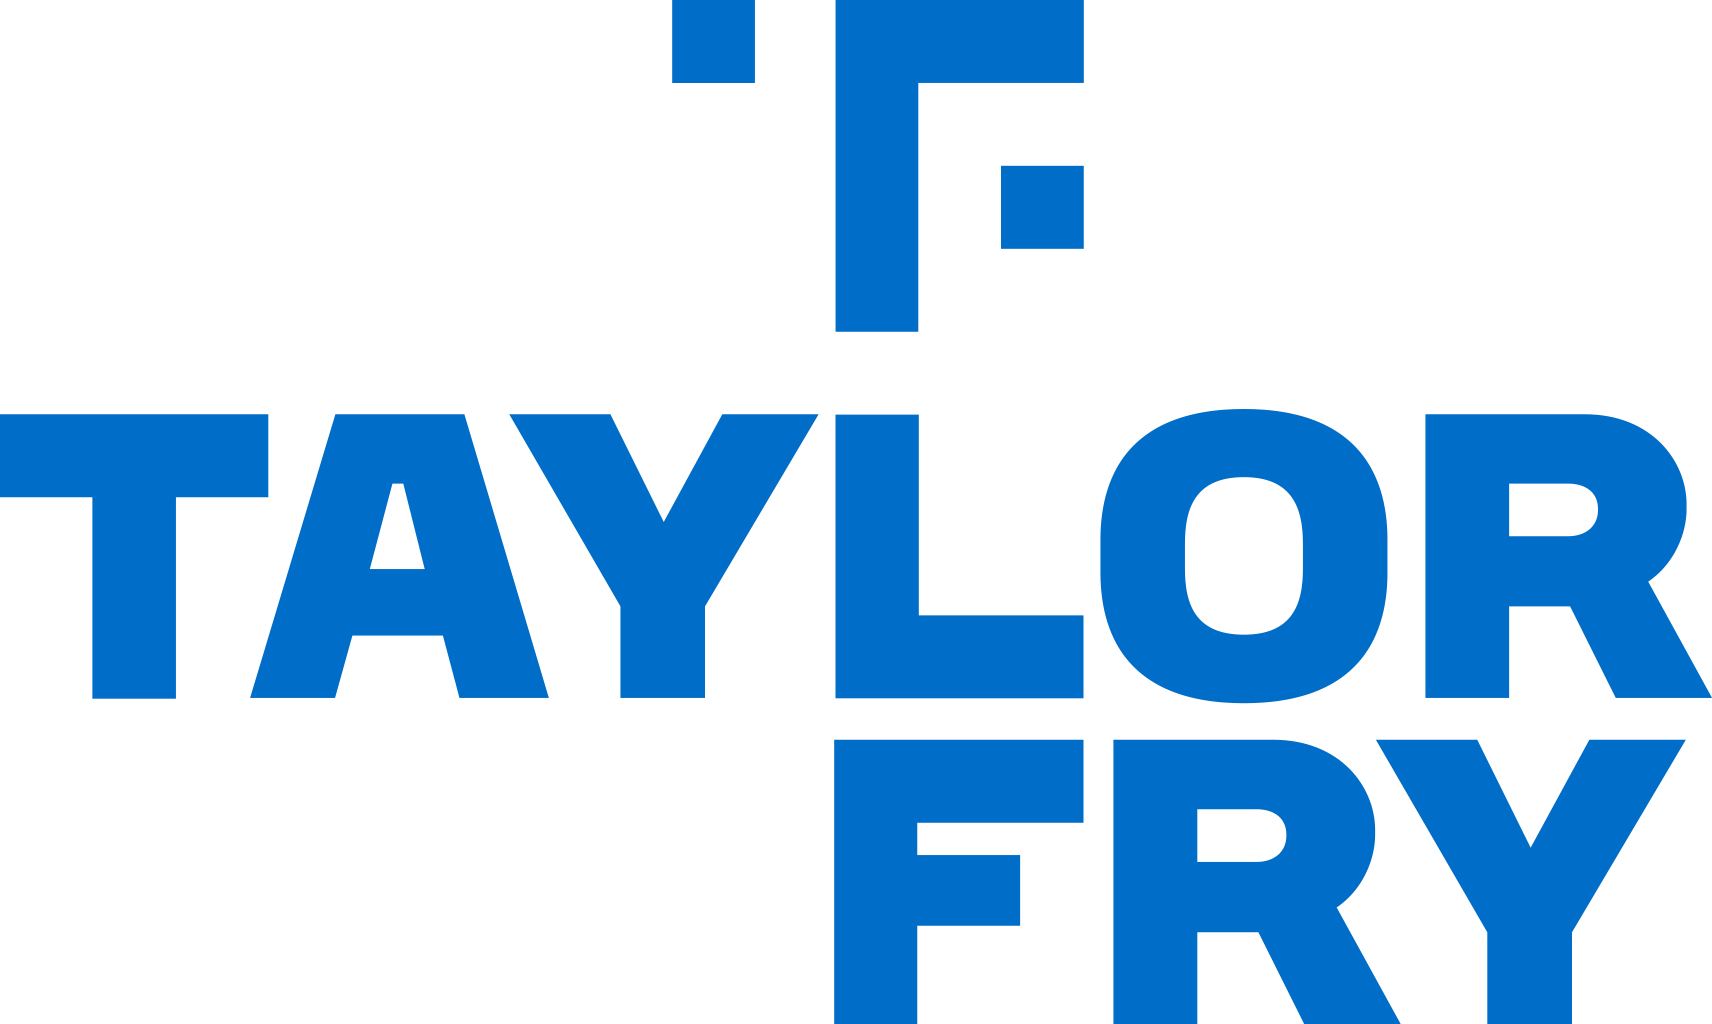 TAYLOR FRY_ID_PRINT_PRIMARY_TFBLUE